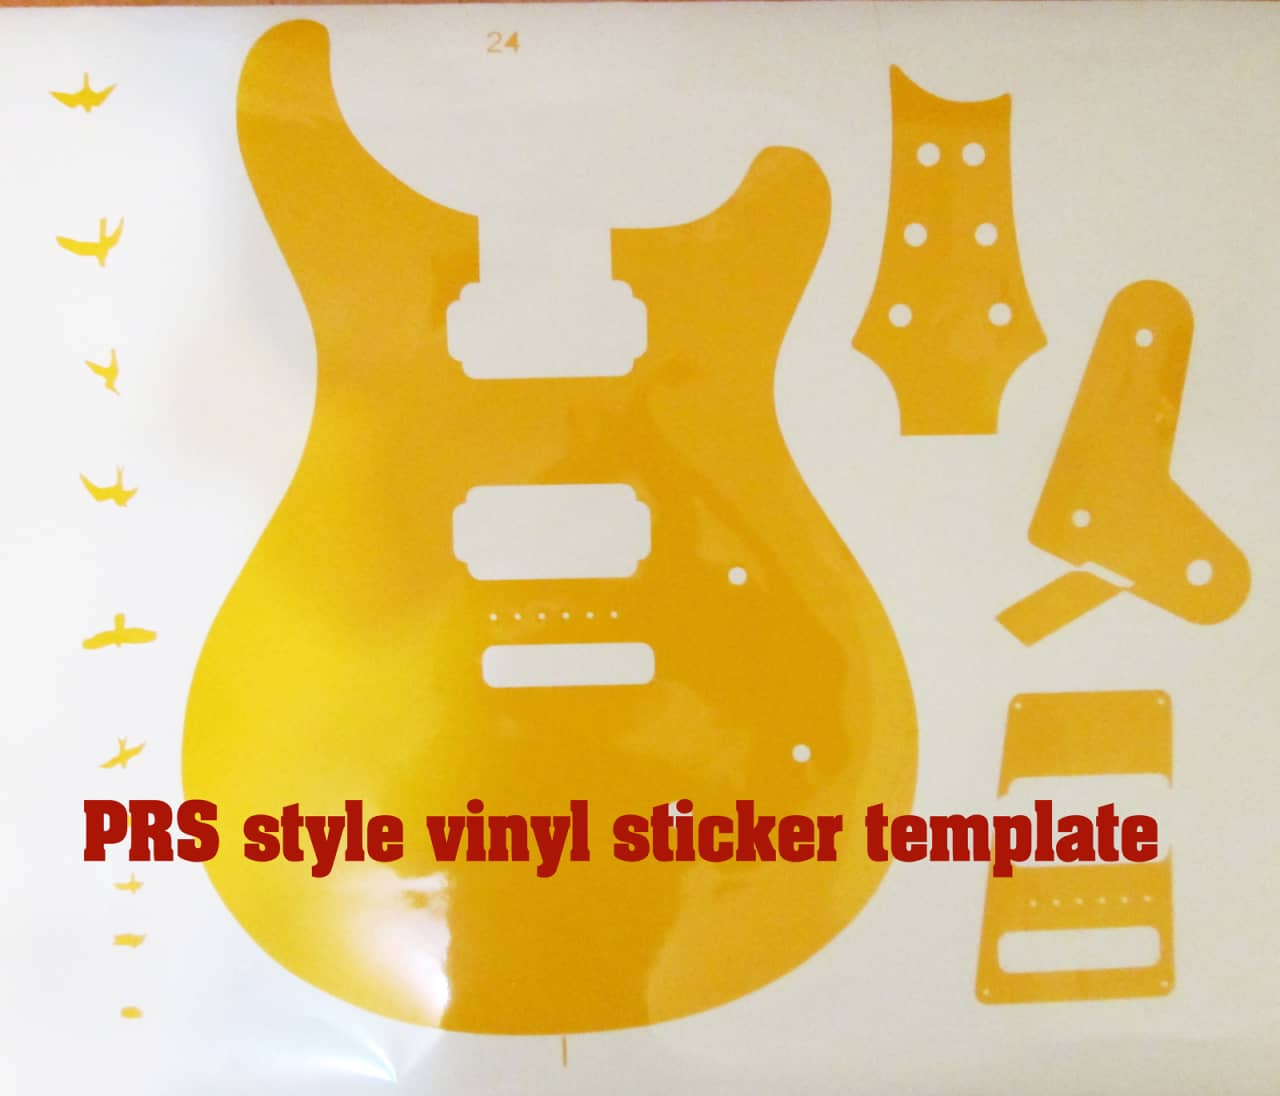 prs guitar body routing template vinyl sticker routing. Black Bedroom Furniture Sets. Home Design Ideas